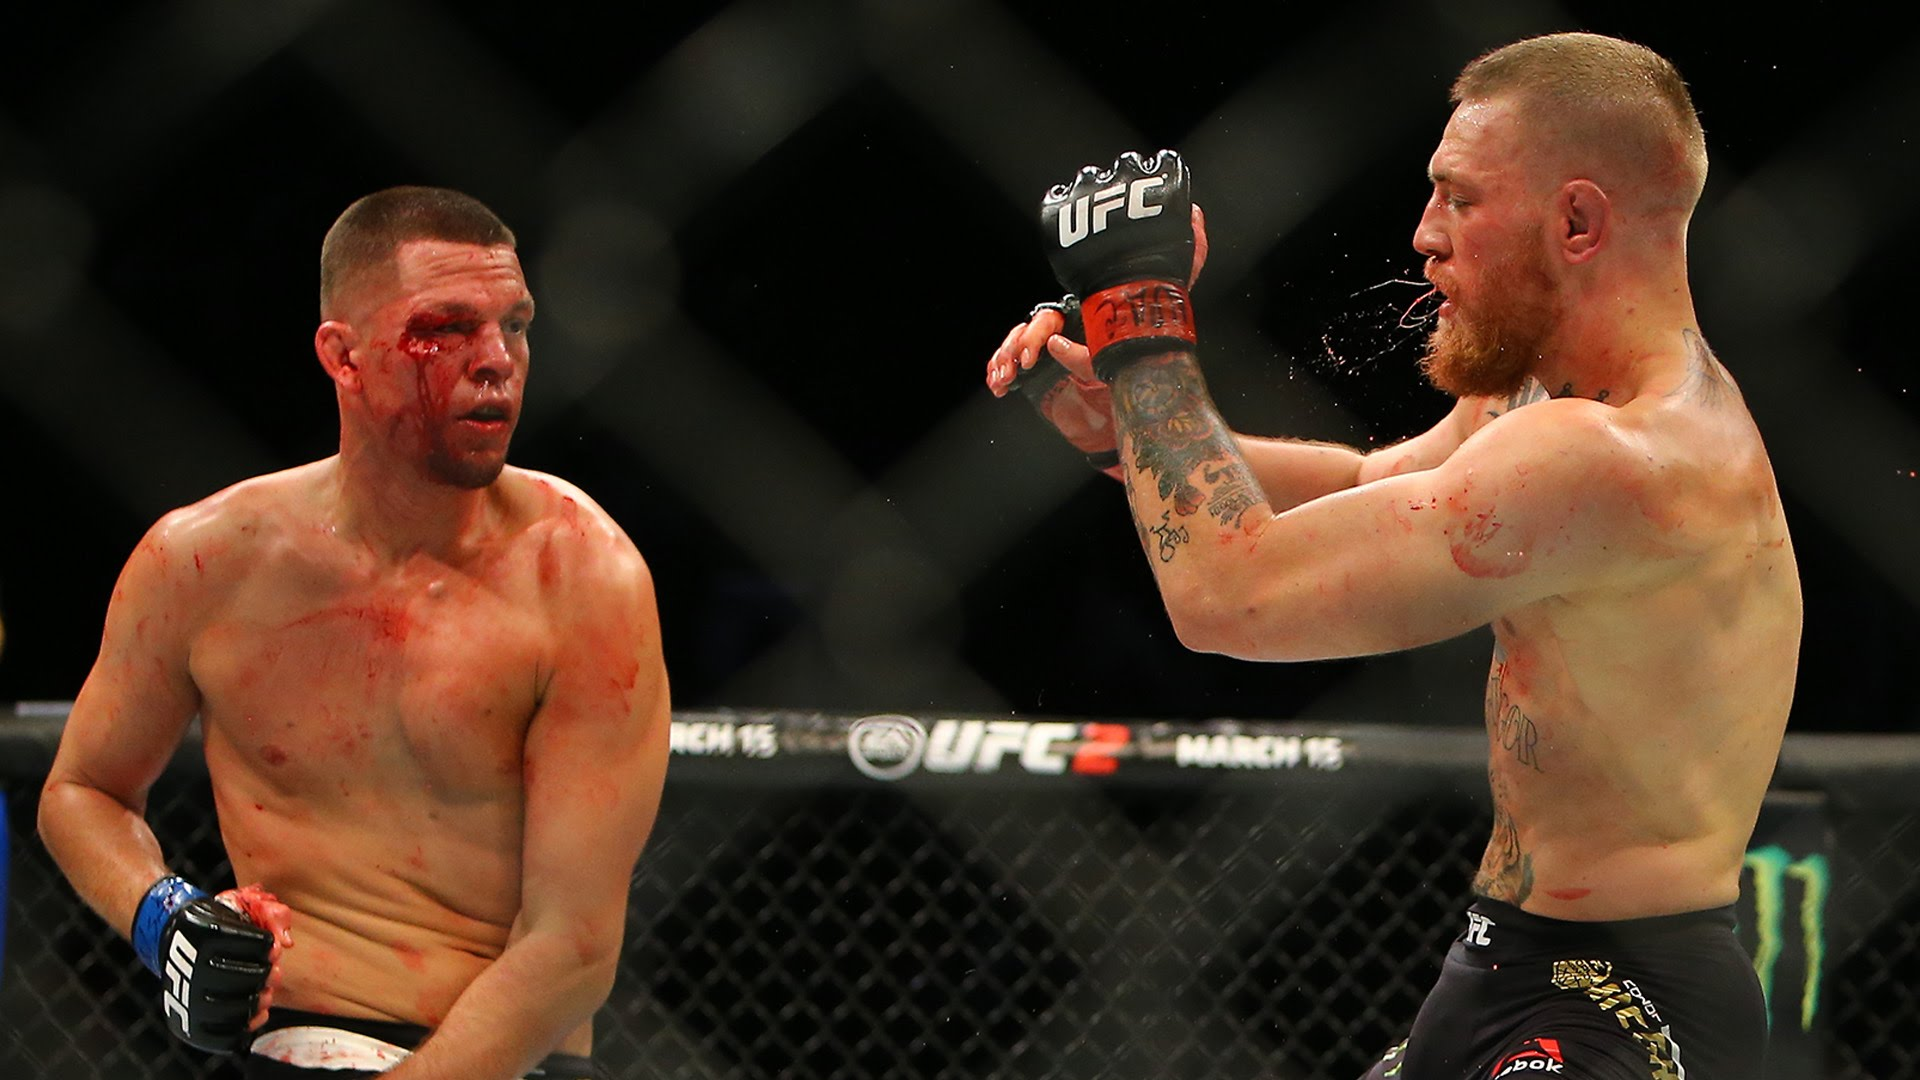 conor mcgregor vs nate diaz 2 2016 mma